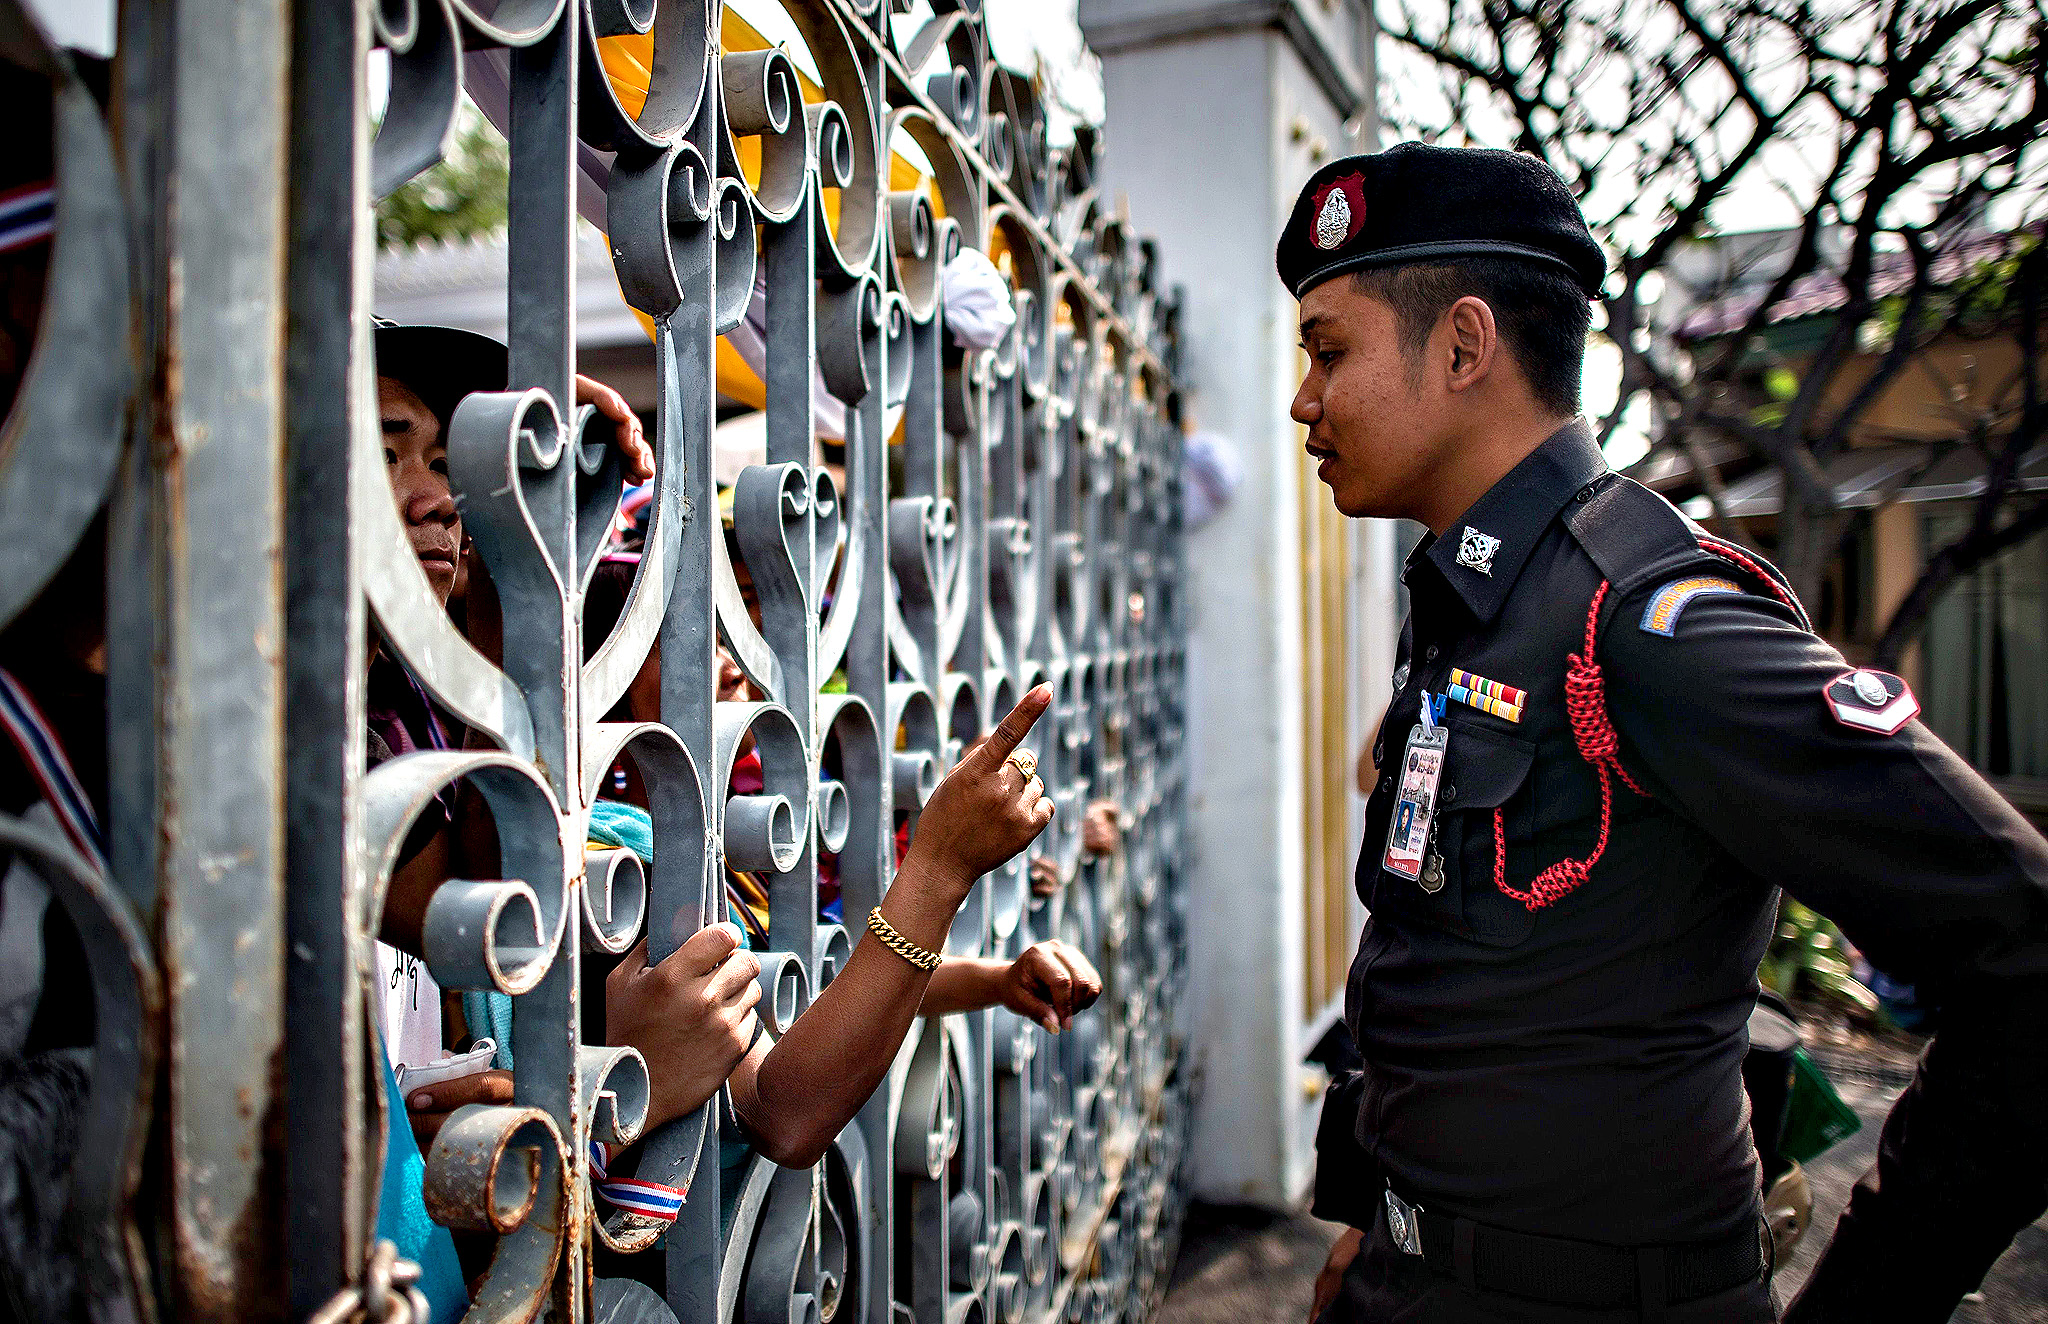 An anti-government demonstrator points his finger at a policeman as they talk through the gate of the Government House in Bangkok on December 12, 2013.  Political turmoil has been rocking the Thai capital for weeks, with protesters seeking to oust Prime Minister Yingluck Shinawatra and rid the kingdom of the influence of her brother, deposed former leader Thaksin.